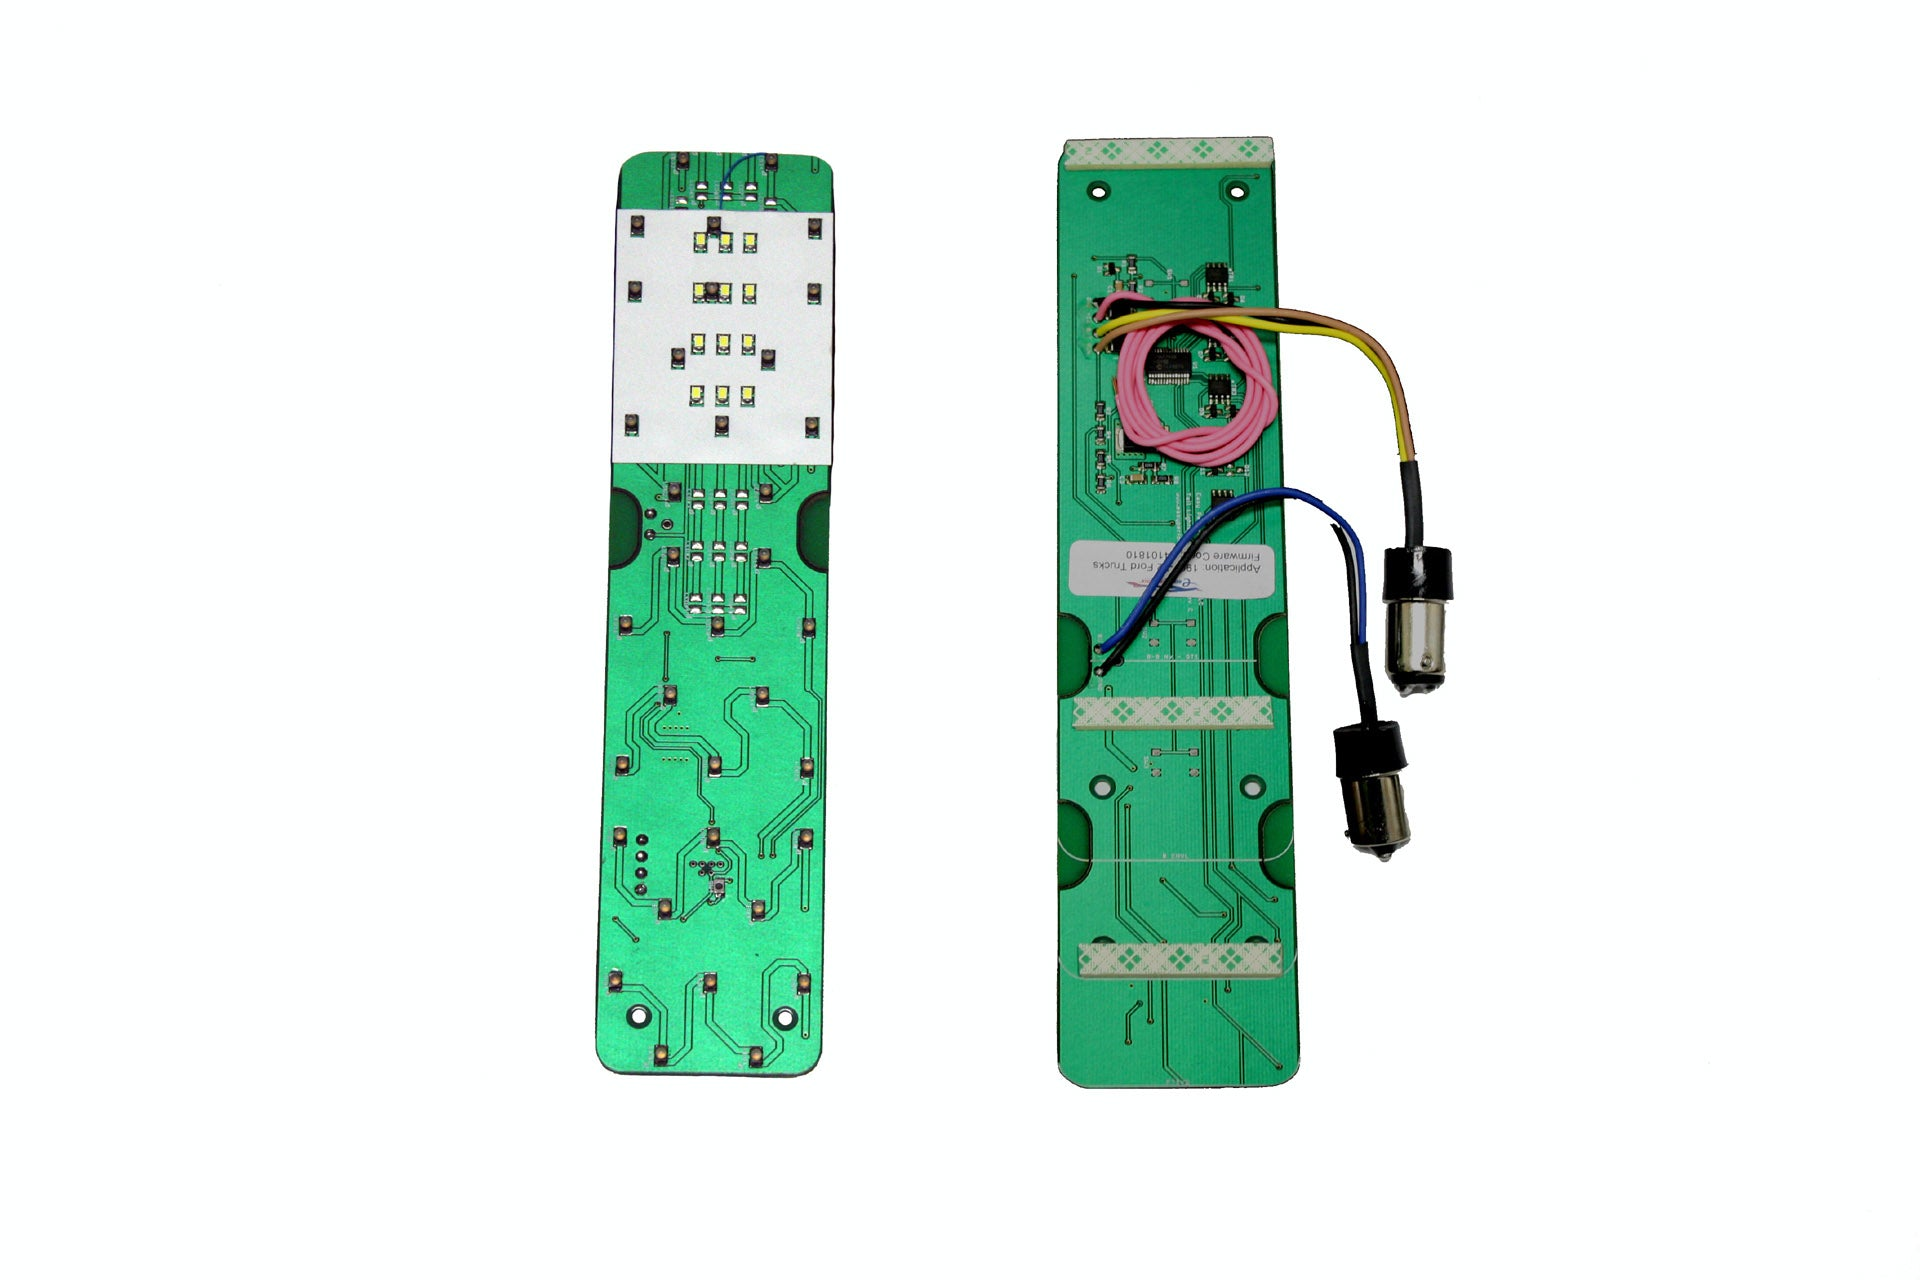 Ford Truck Sequential LED Taillight Kit ('67-'72) – Easy Performance on 1972 ford f-250 wiring harness, 1967 bronco wiring harness, ford truck wiring harness, 91 ford wiring harness,